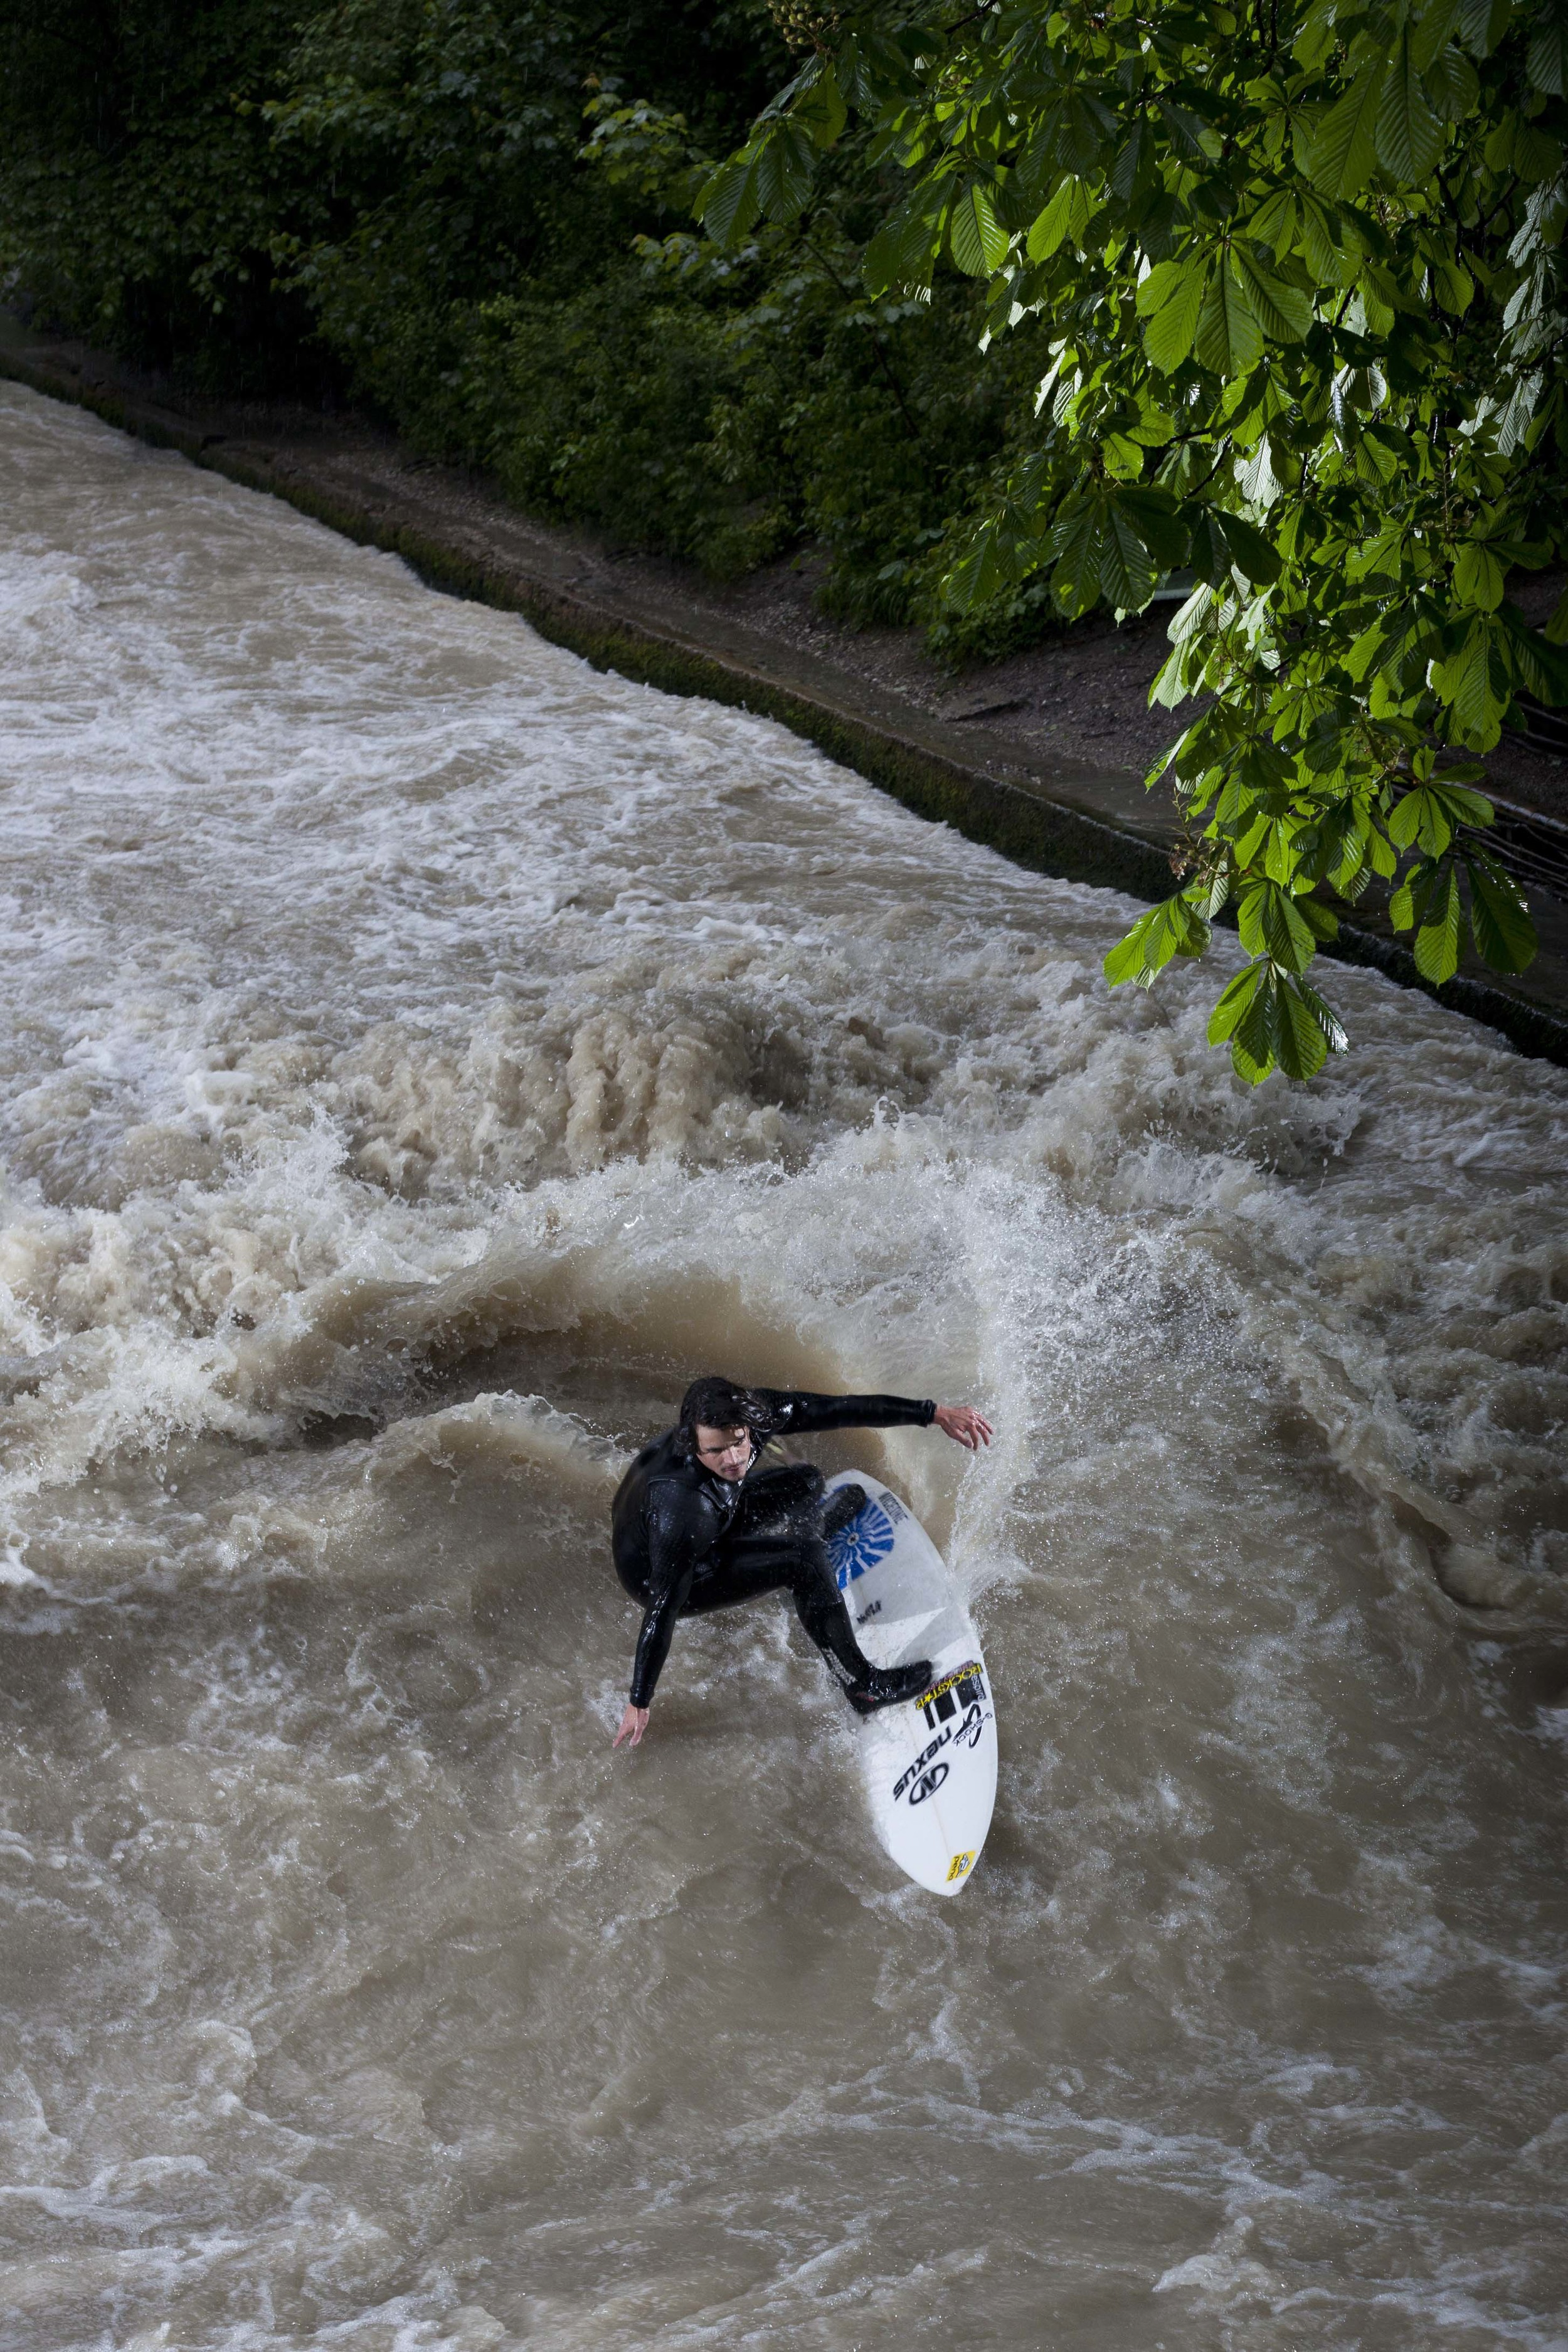 GERMANY. Munich. June 2013. Pro surfer   Steve Ratzisberger     at the Eisbach.